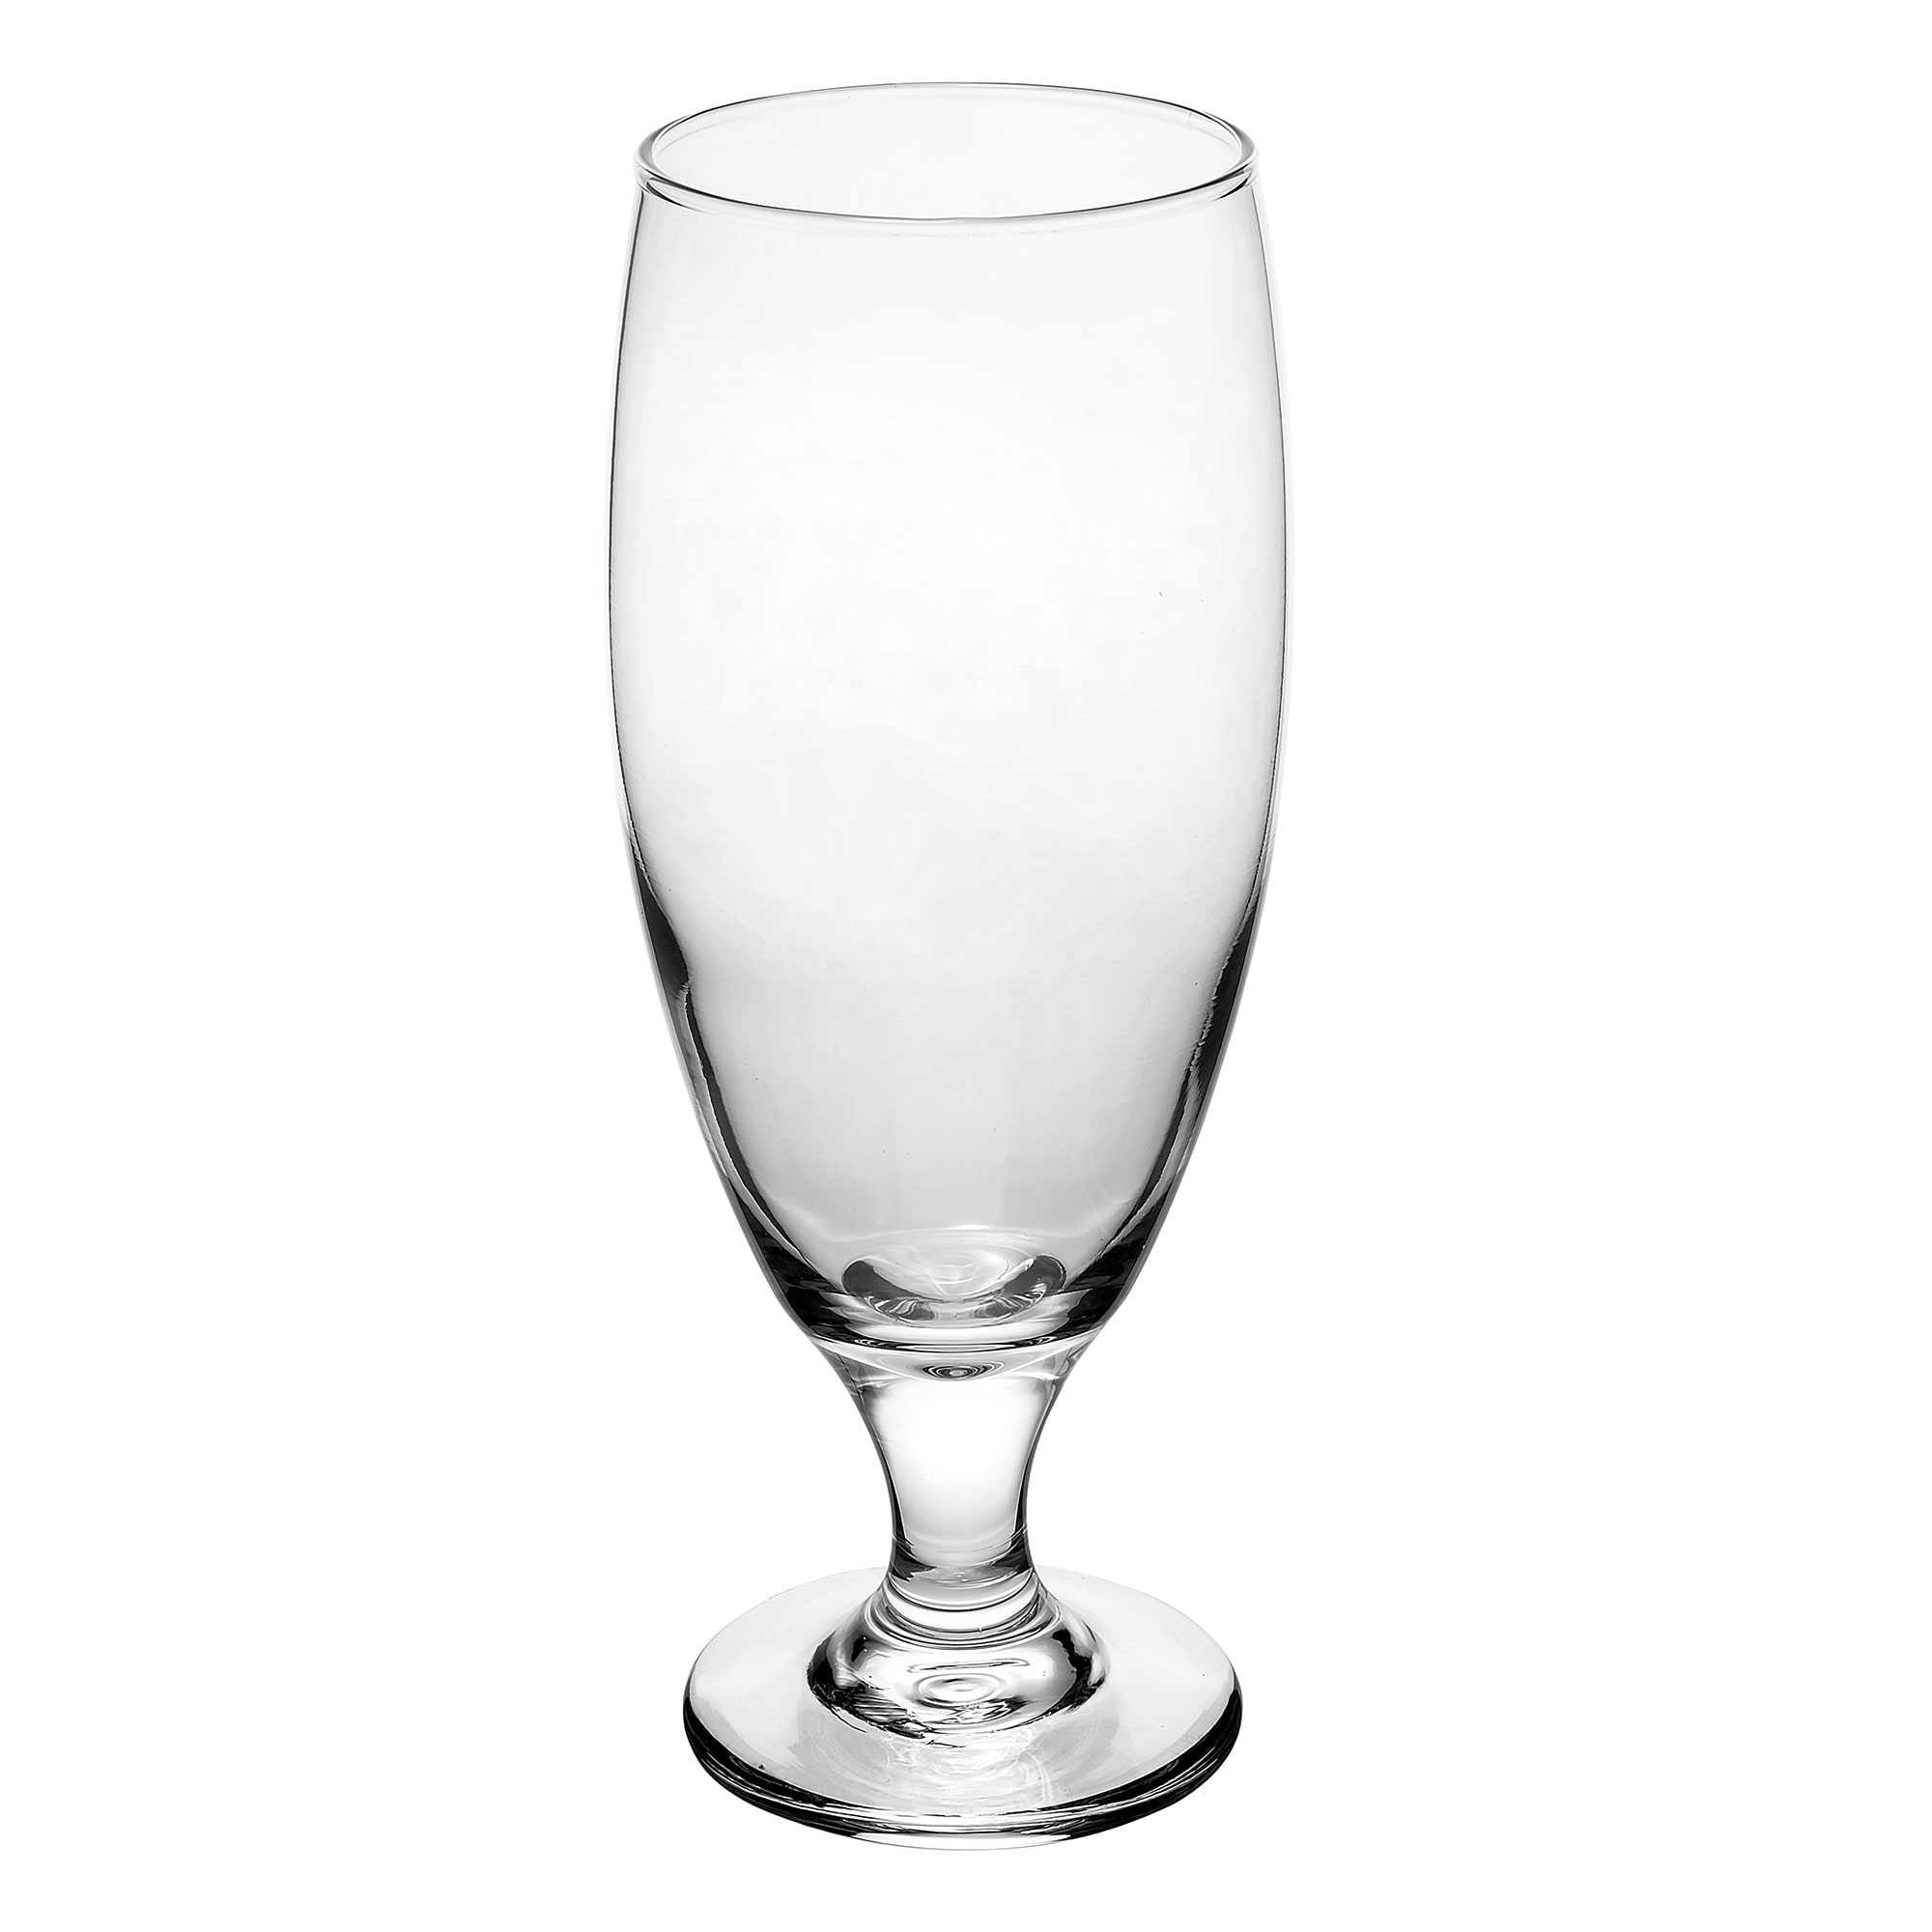 Libbey 3804 16 oz Embassy Pilsner Glass - Safedge Rim & Foot